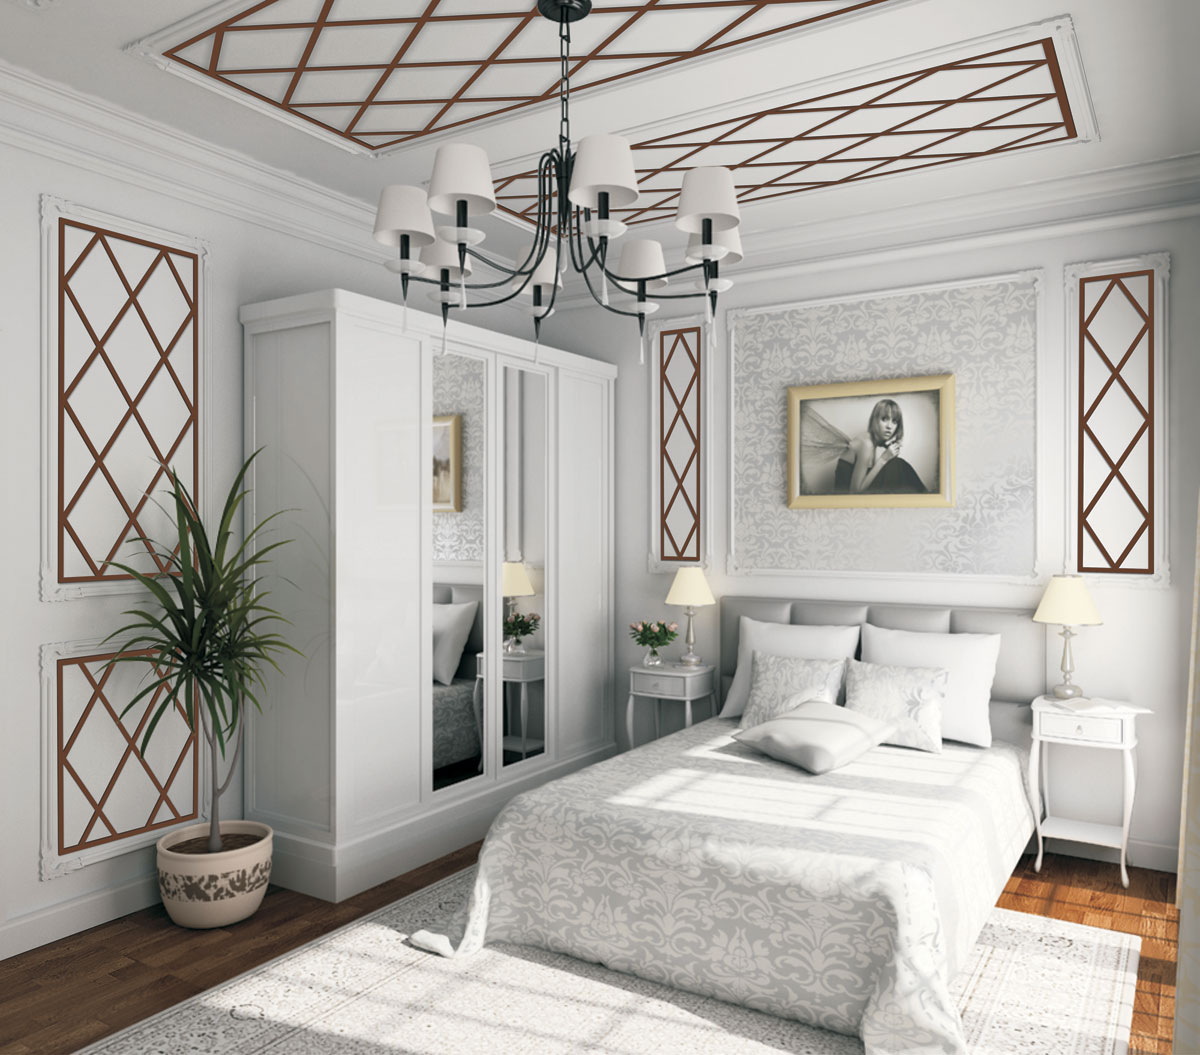 Round Bedroom Ceiling Bedroom Feature Wall Paint Ideas Bedroom Decorating Ideas Teenage Guys Lcd Cabinet Designs Bedroom: Omega Feature Mould Inspiration Gallery